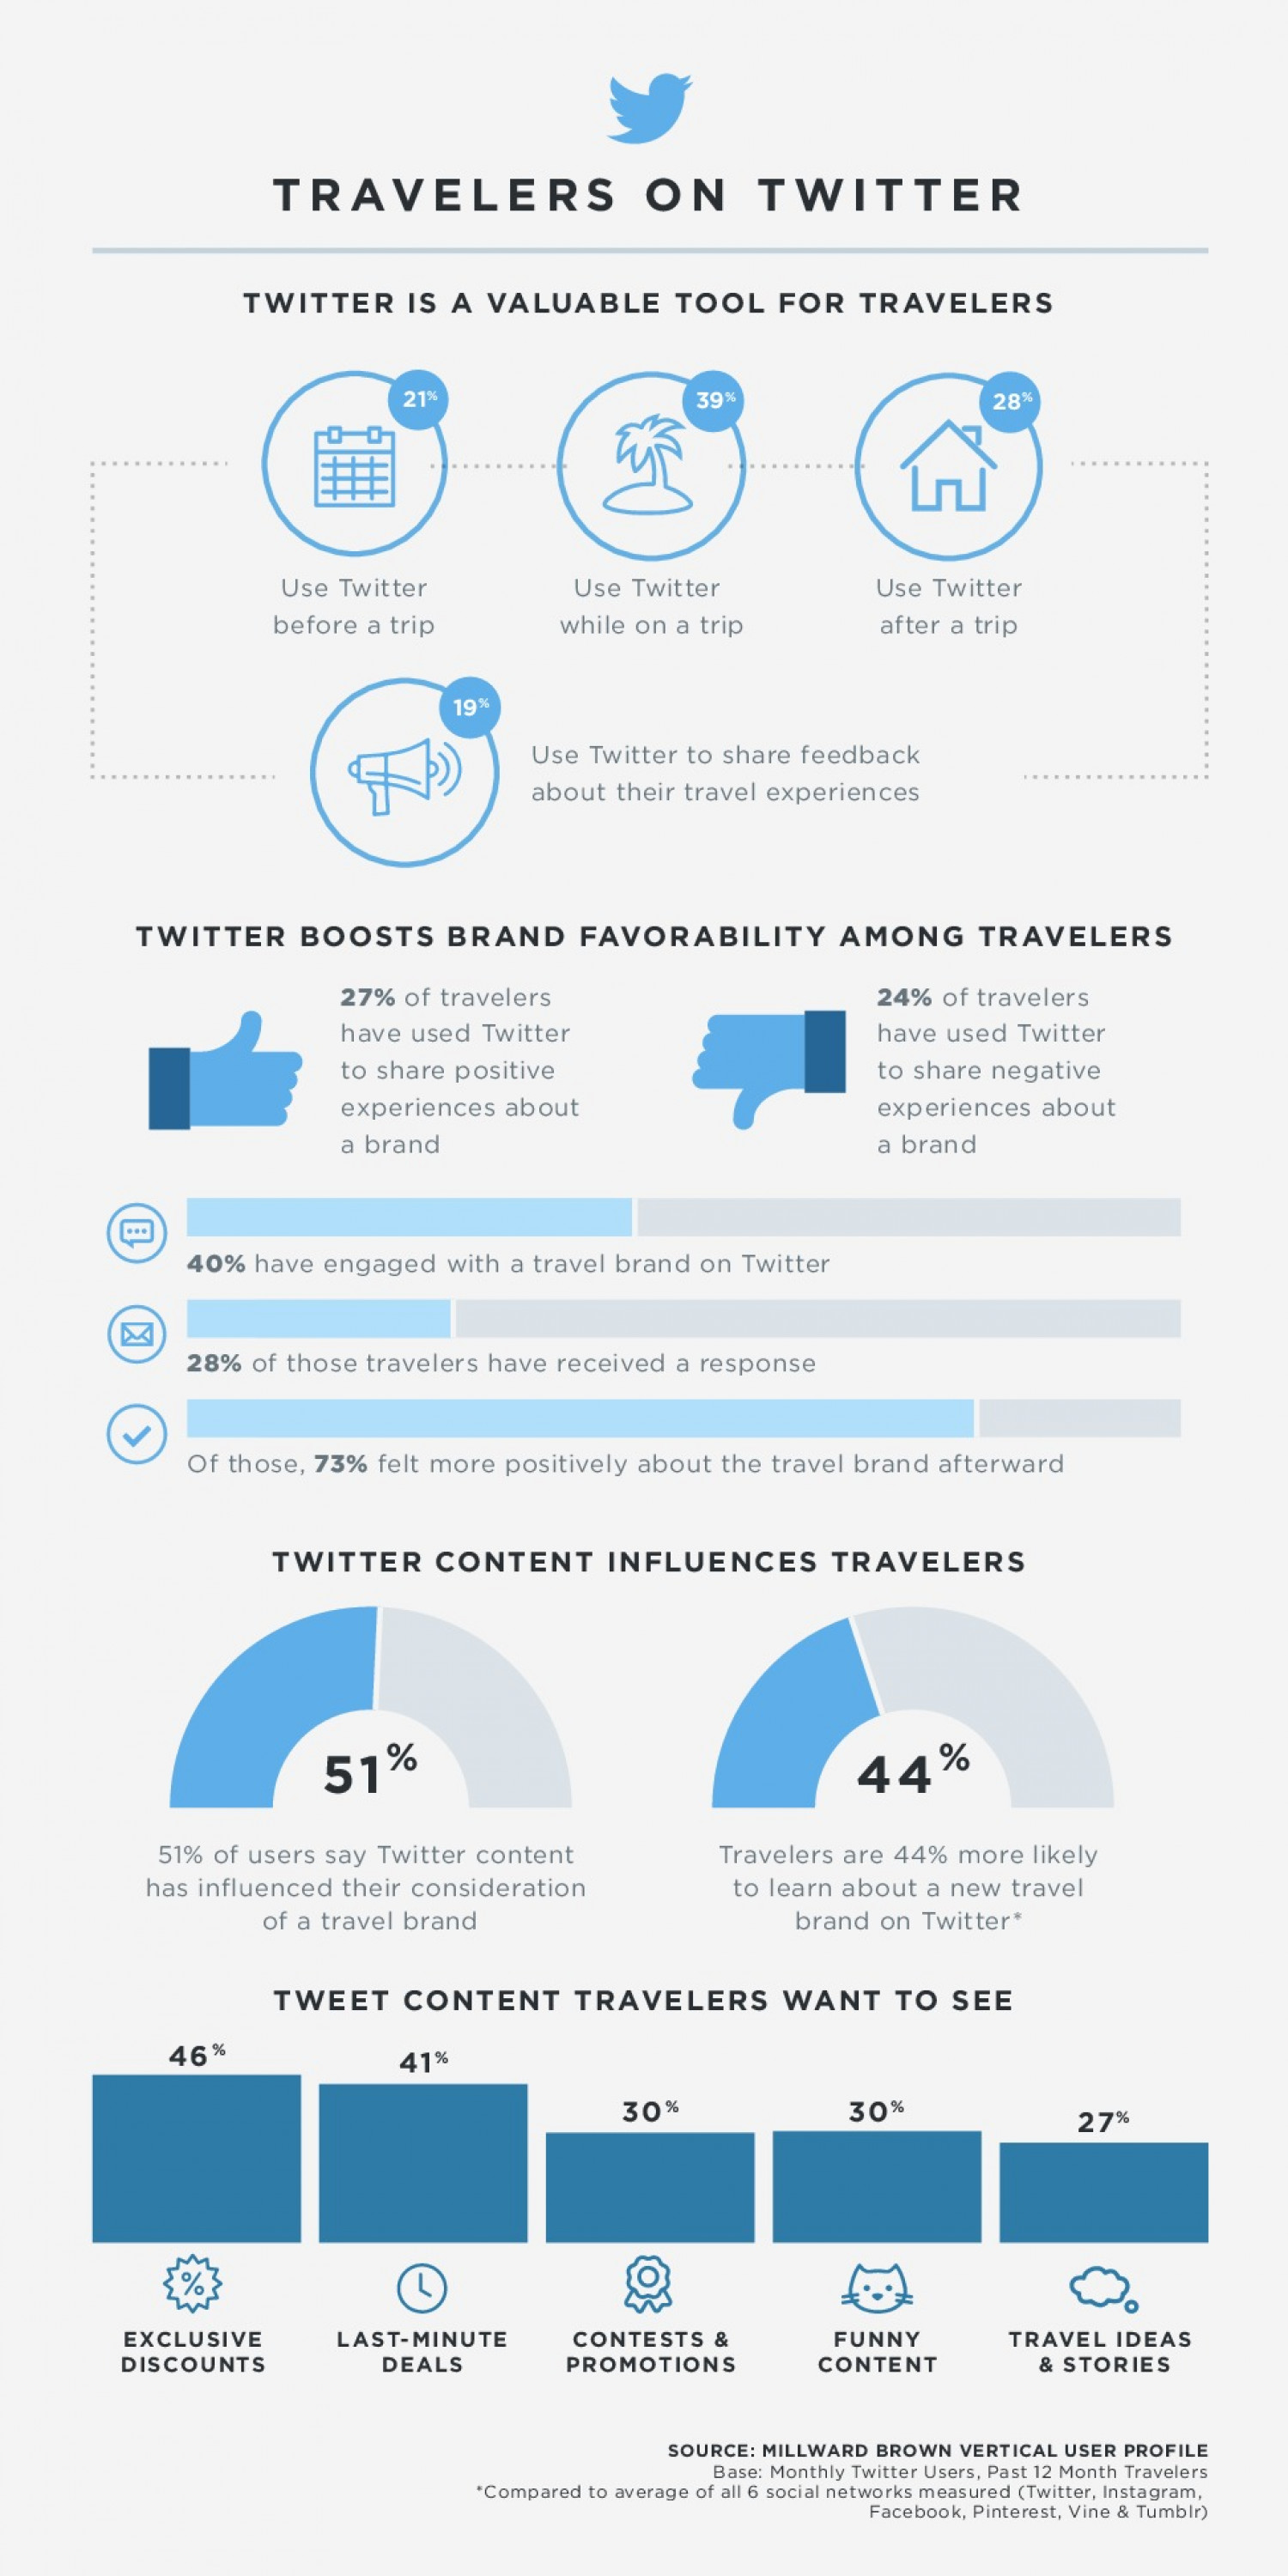 Travelers on Twitter Infographic